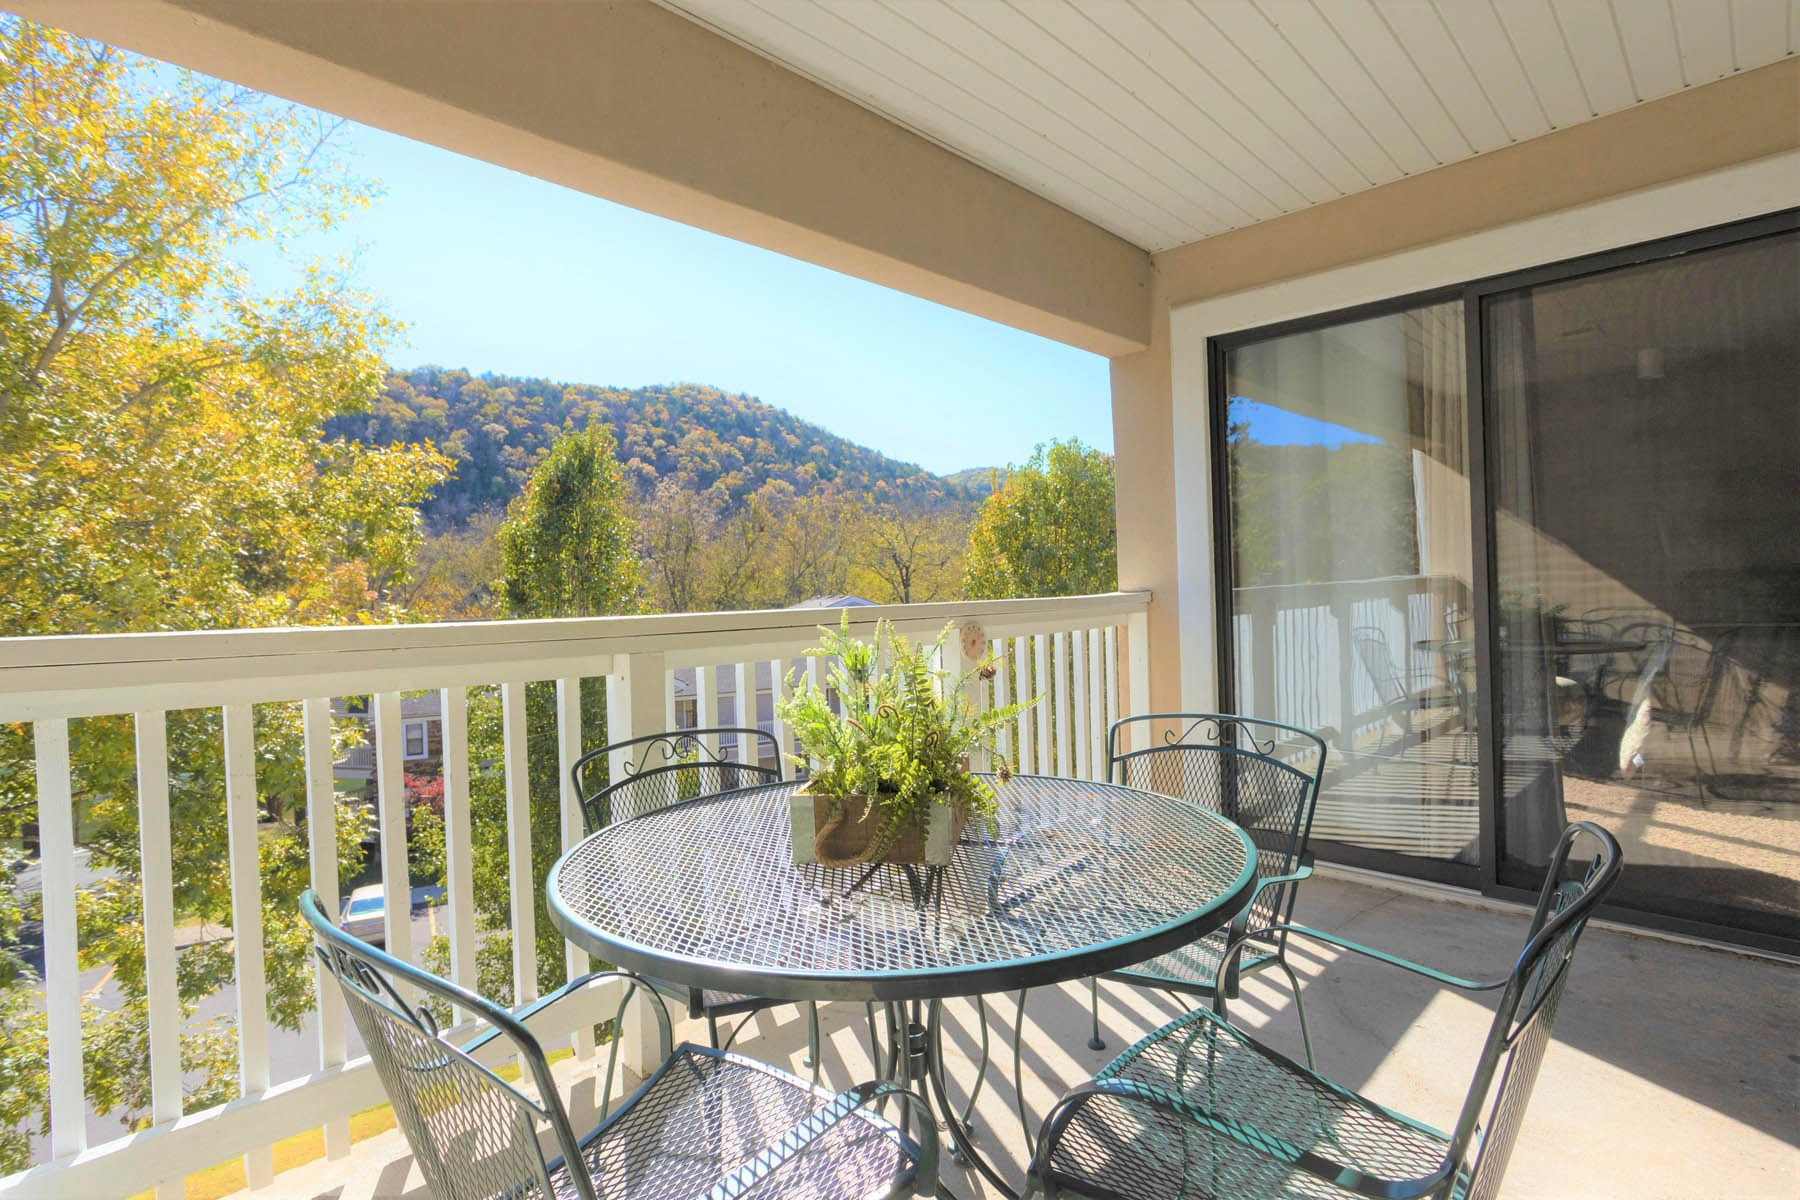 Balcony with metal patio table and chairs